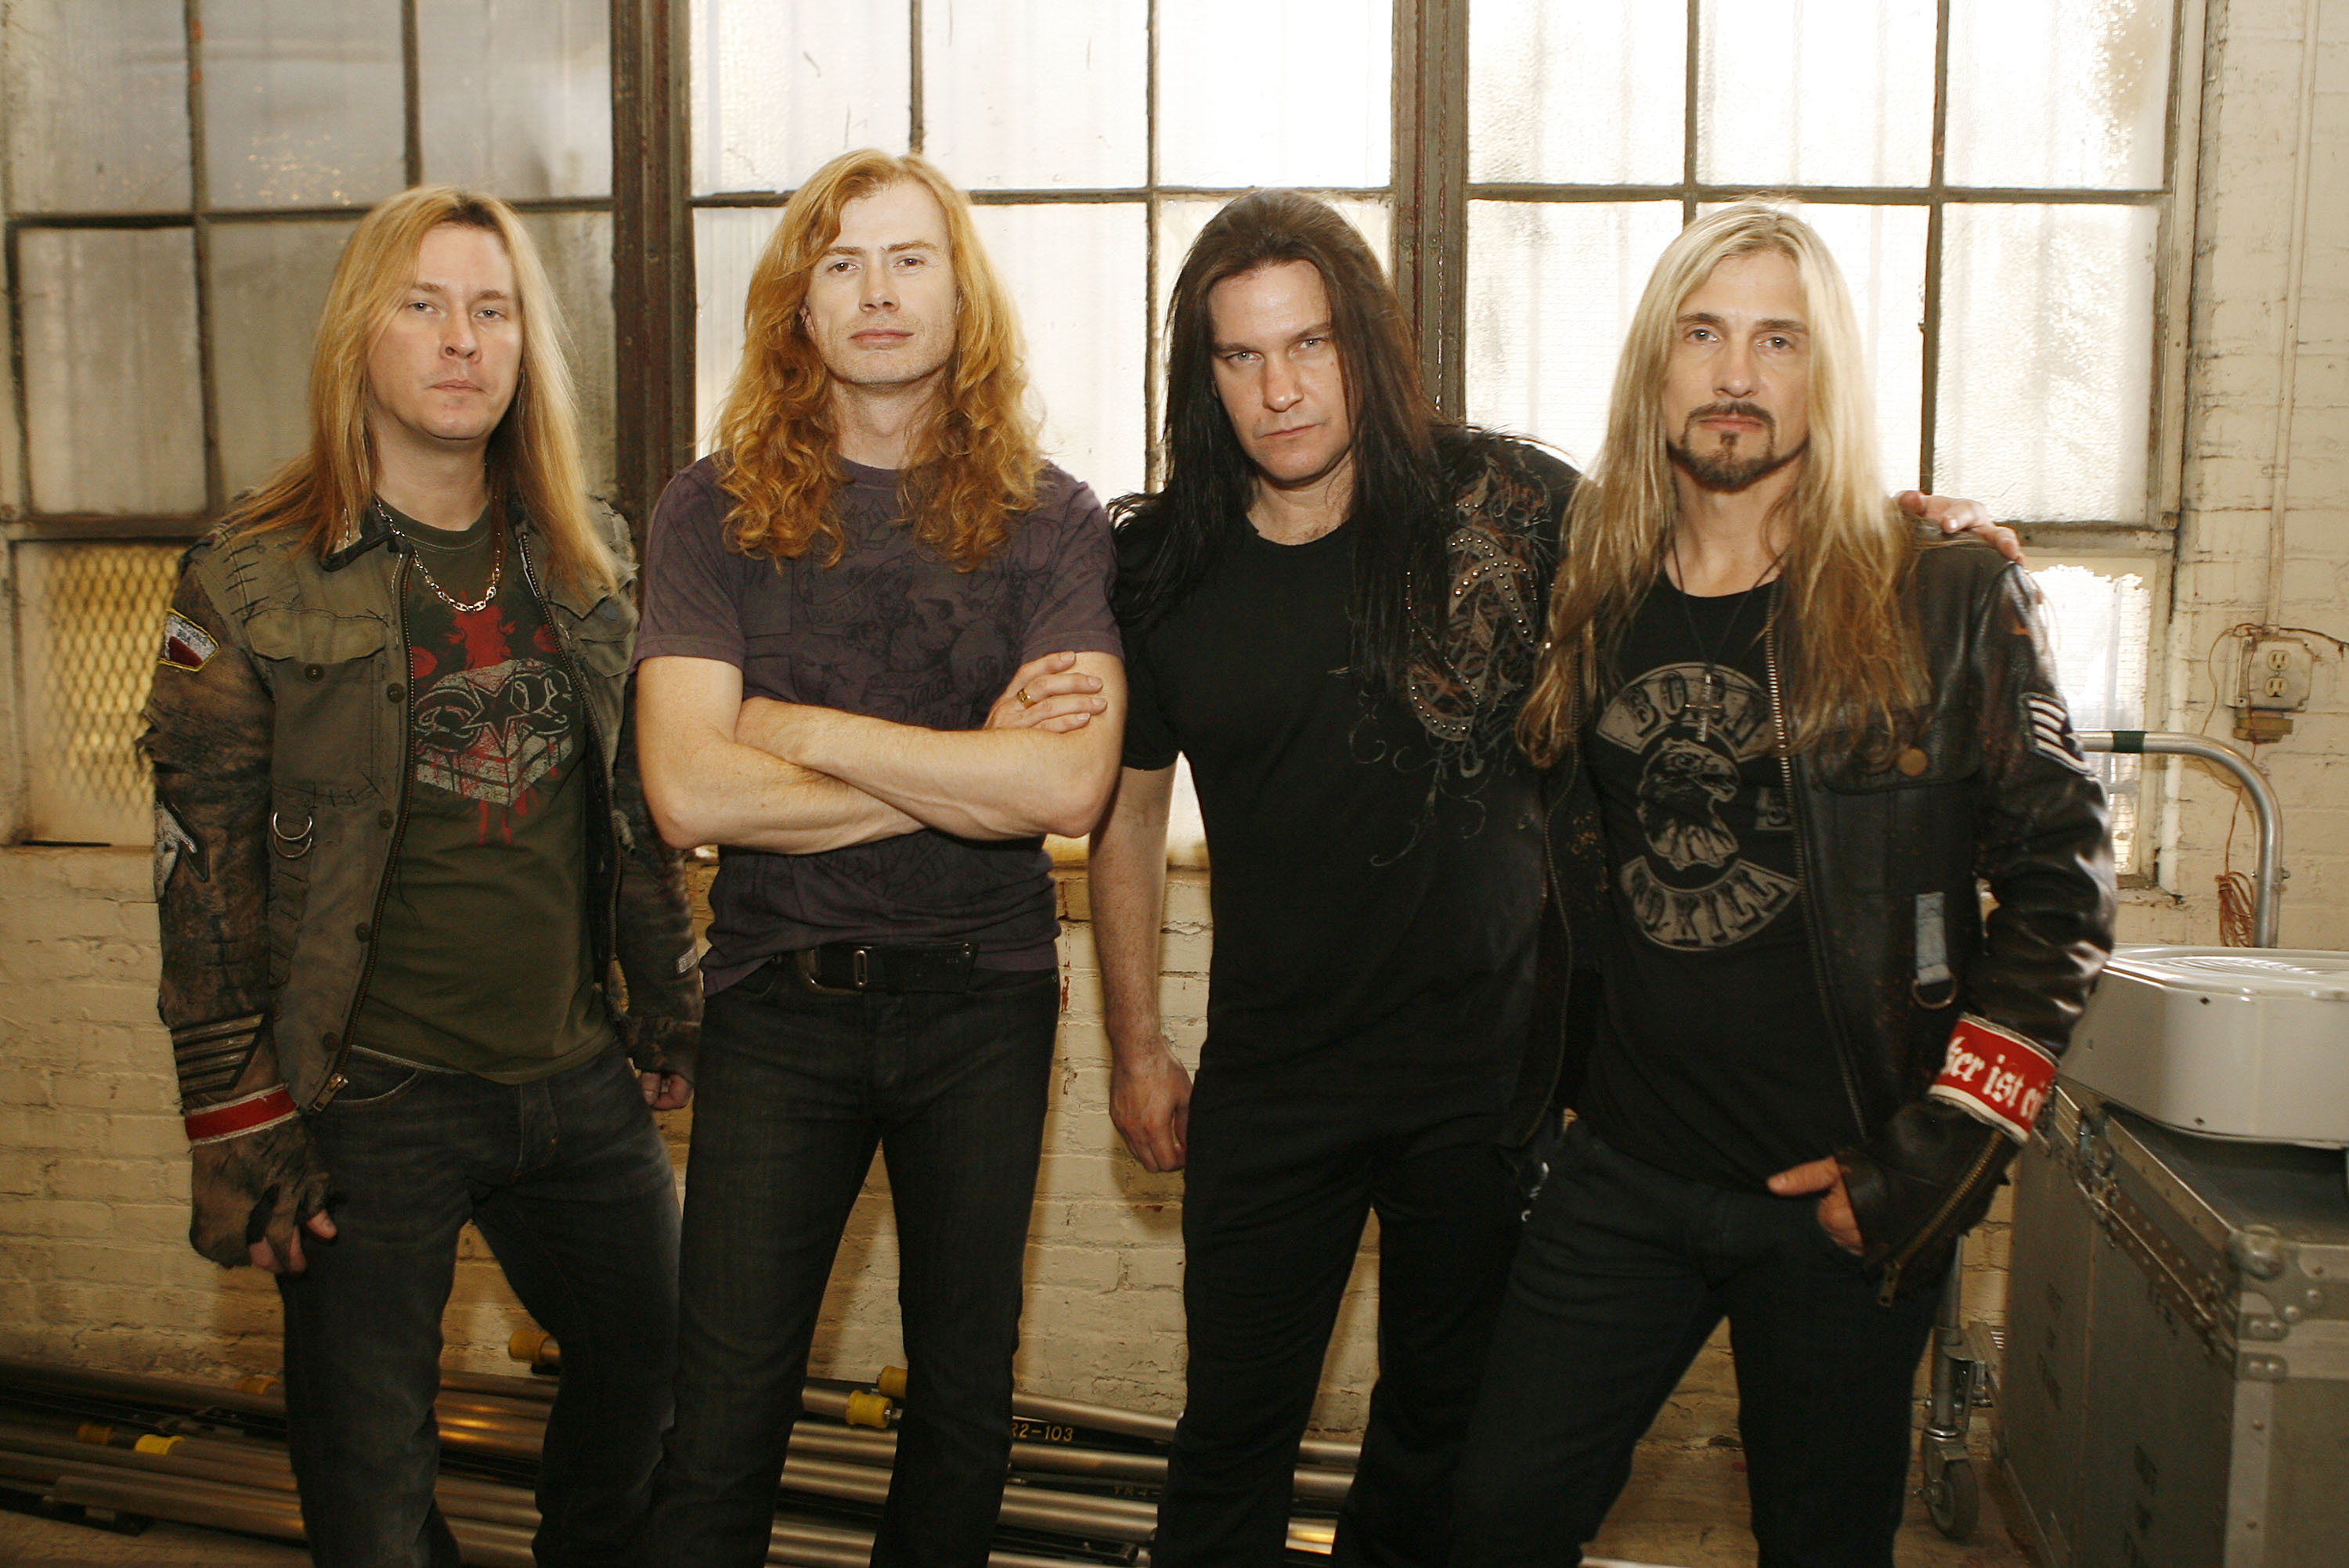 Megadeth to release new album Super Collider in June and tour UK